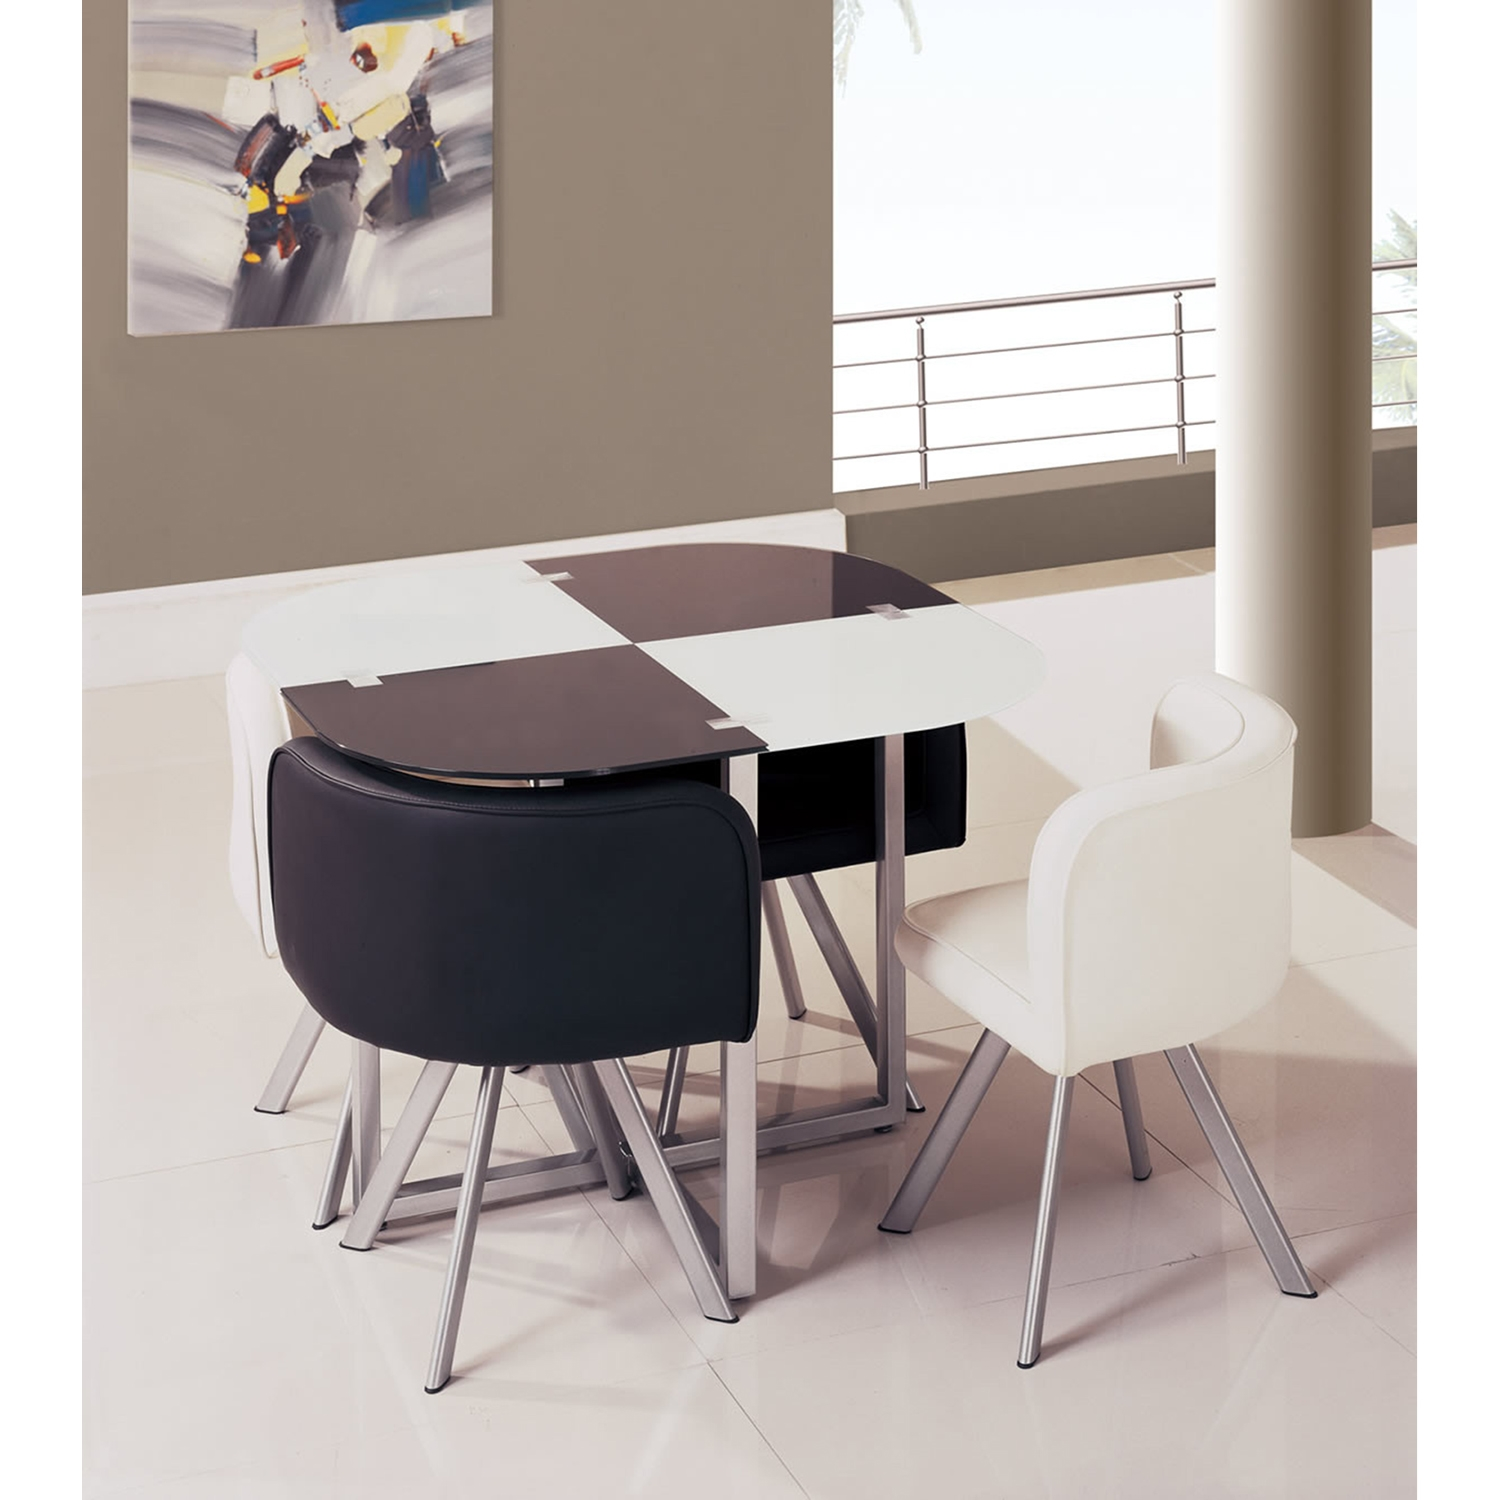 Emma 5-Piece Dining Set in Black/White